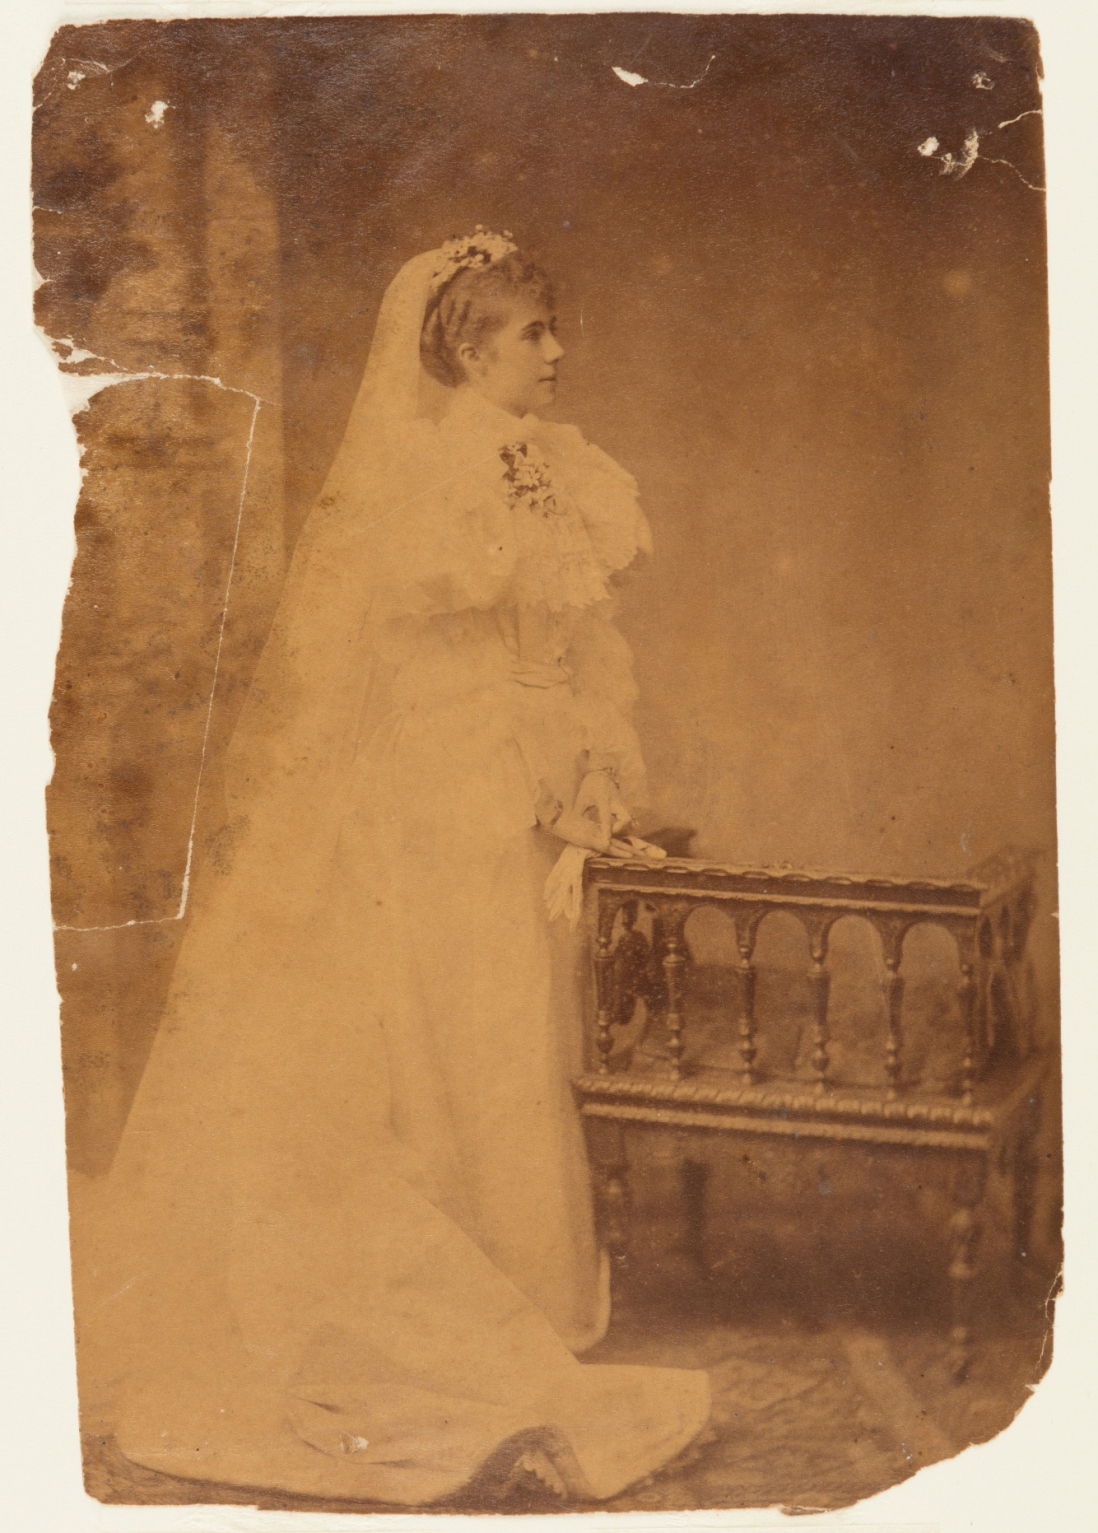 Nina Beatrice Terry, 24 April 1895